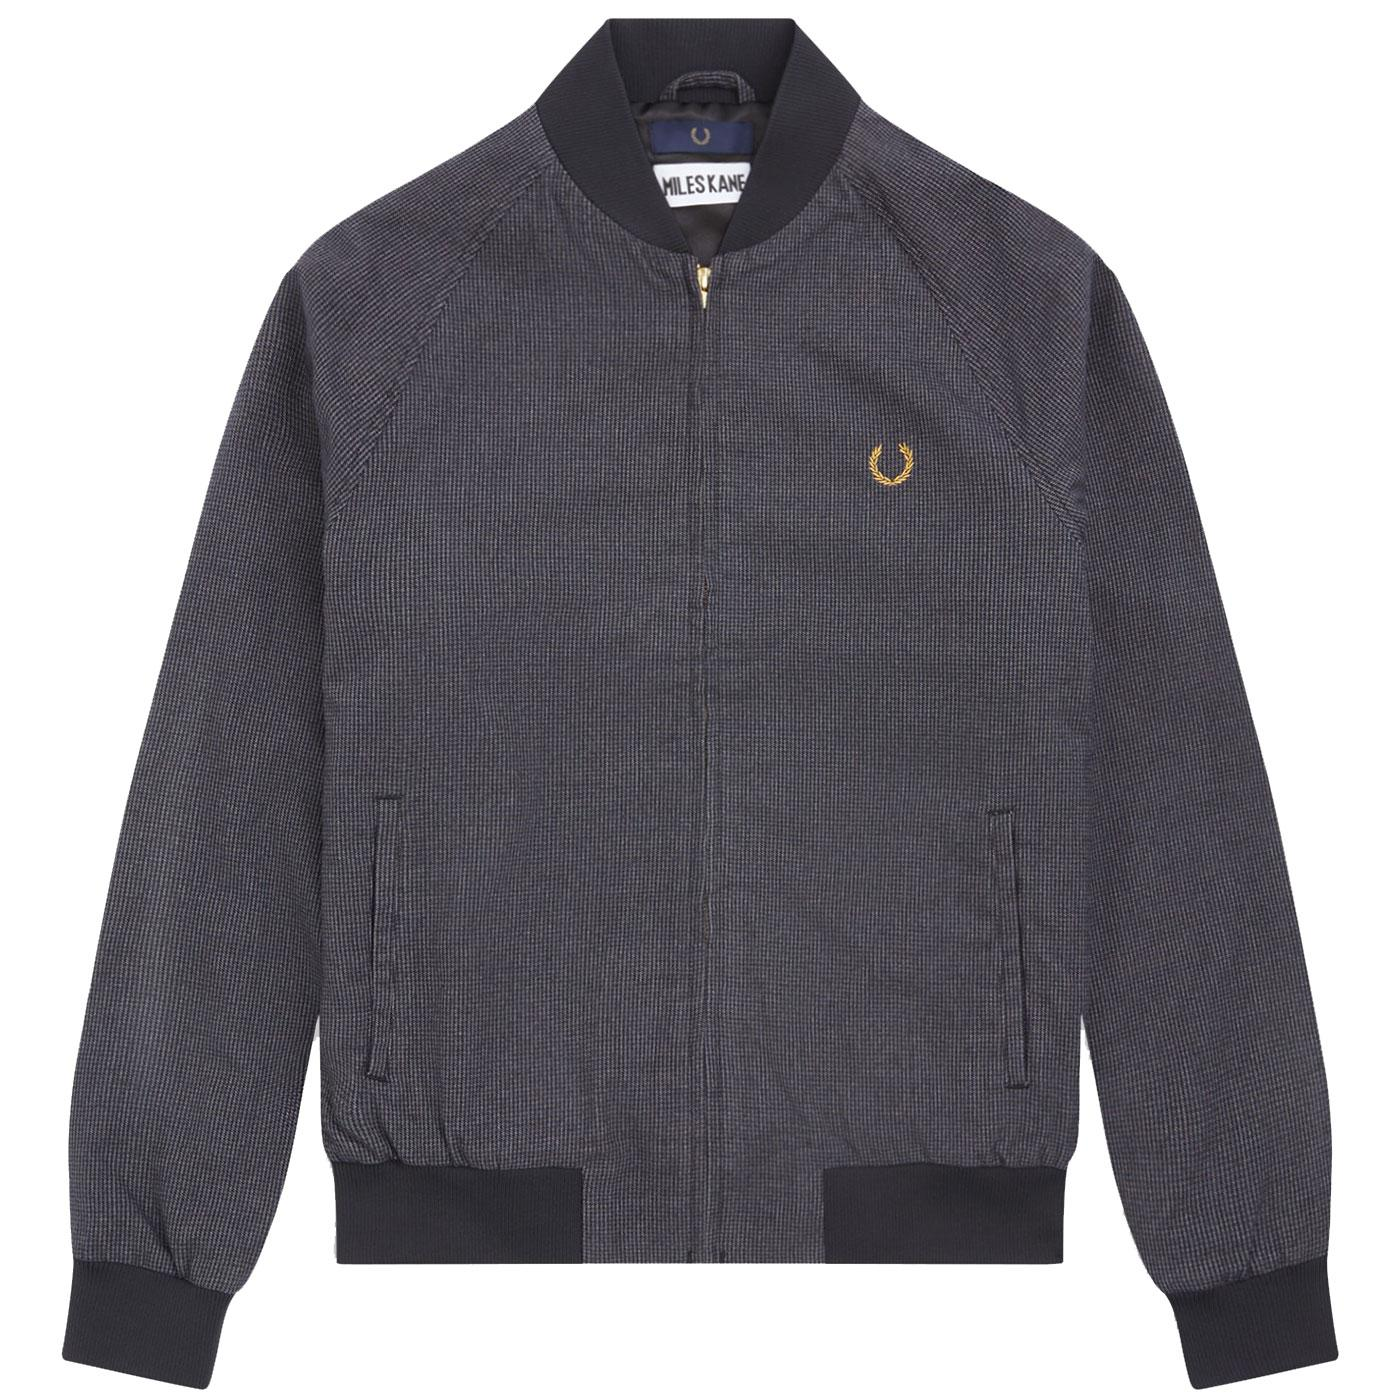 FRED PERRY X MILES KANE Mod Dogtooth Bomber Jacket